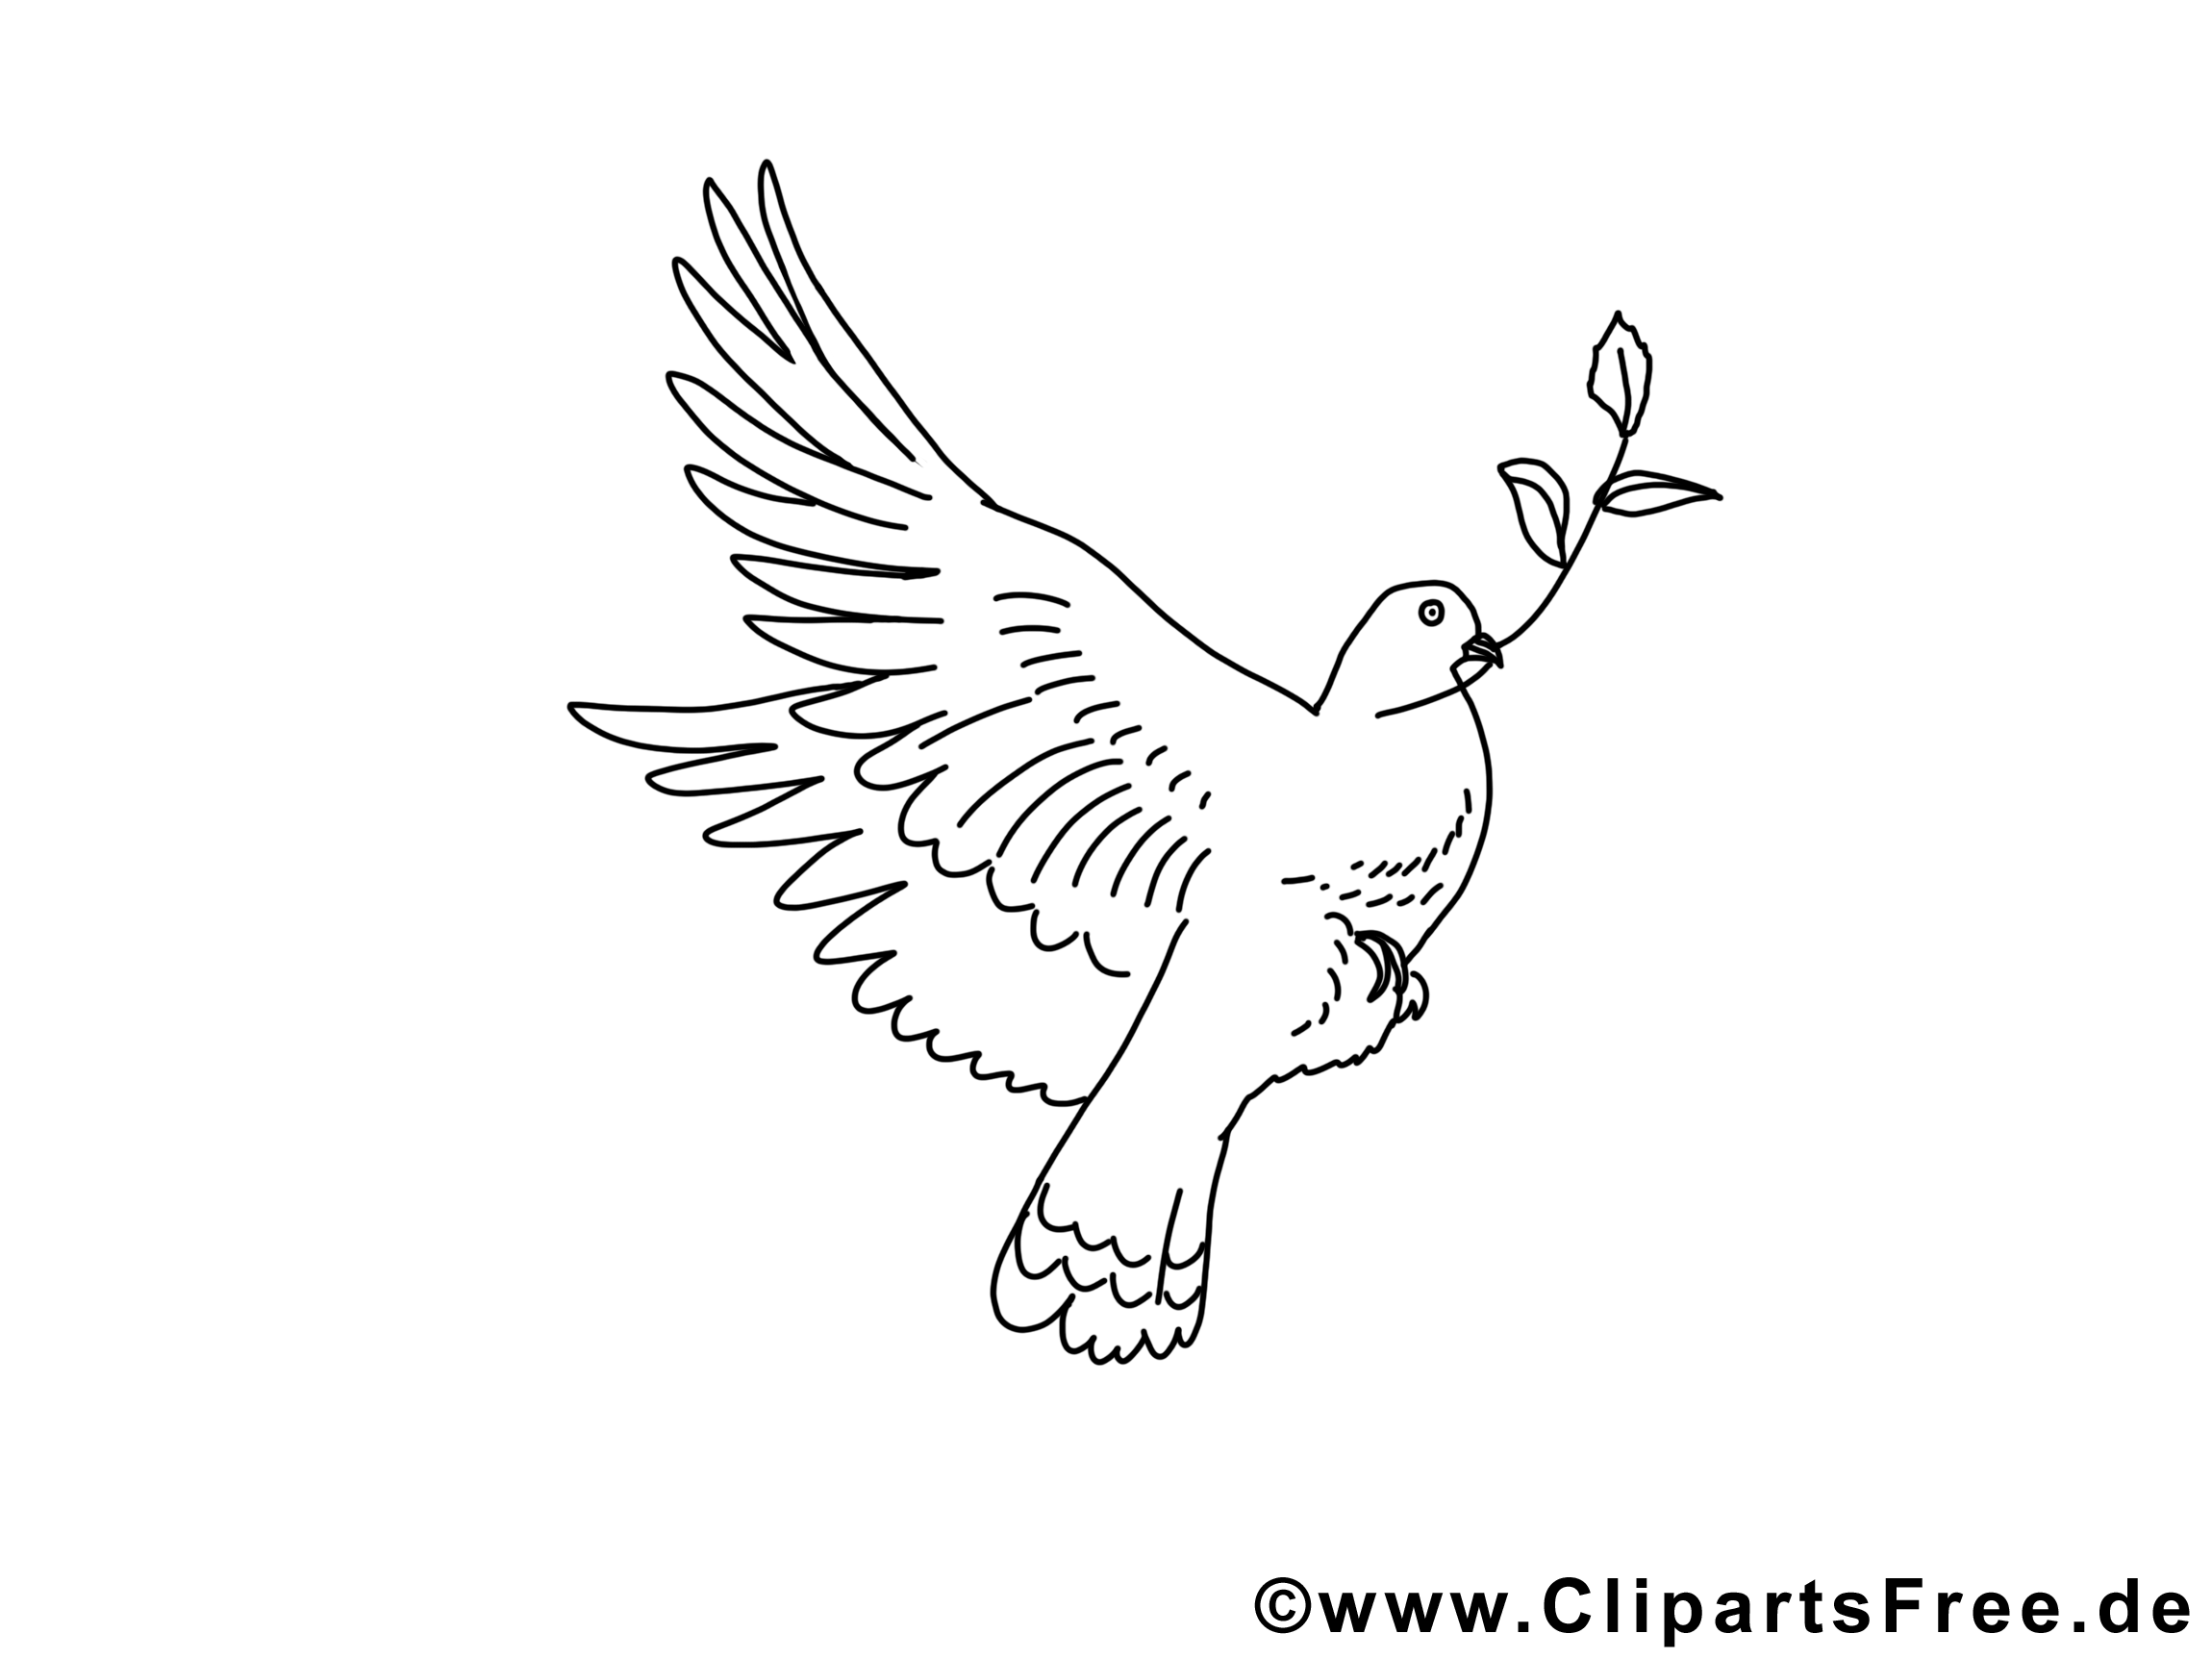 Colombe dessin imprimer images divers pages colorier - Colombe coloriage ...